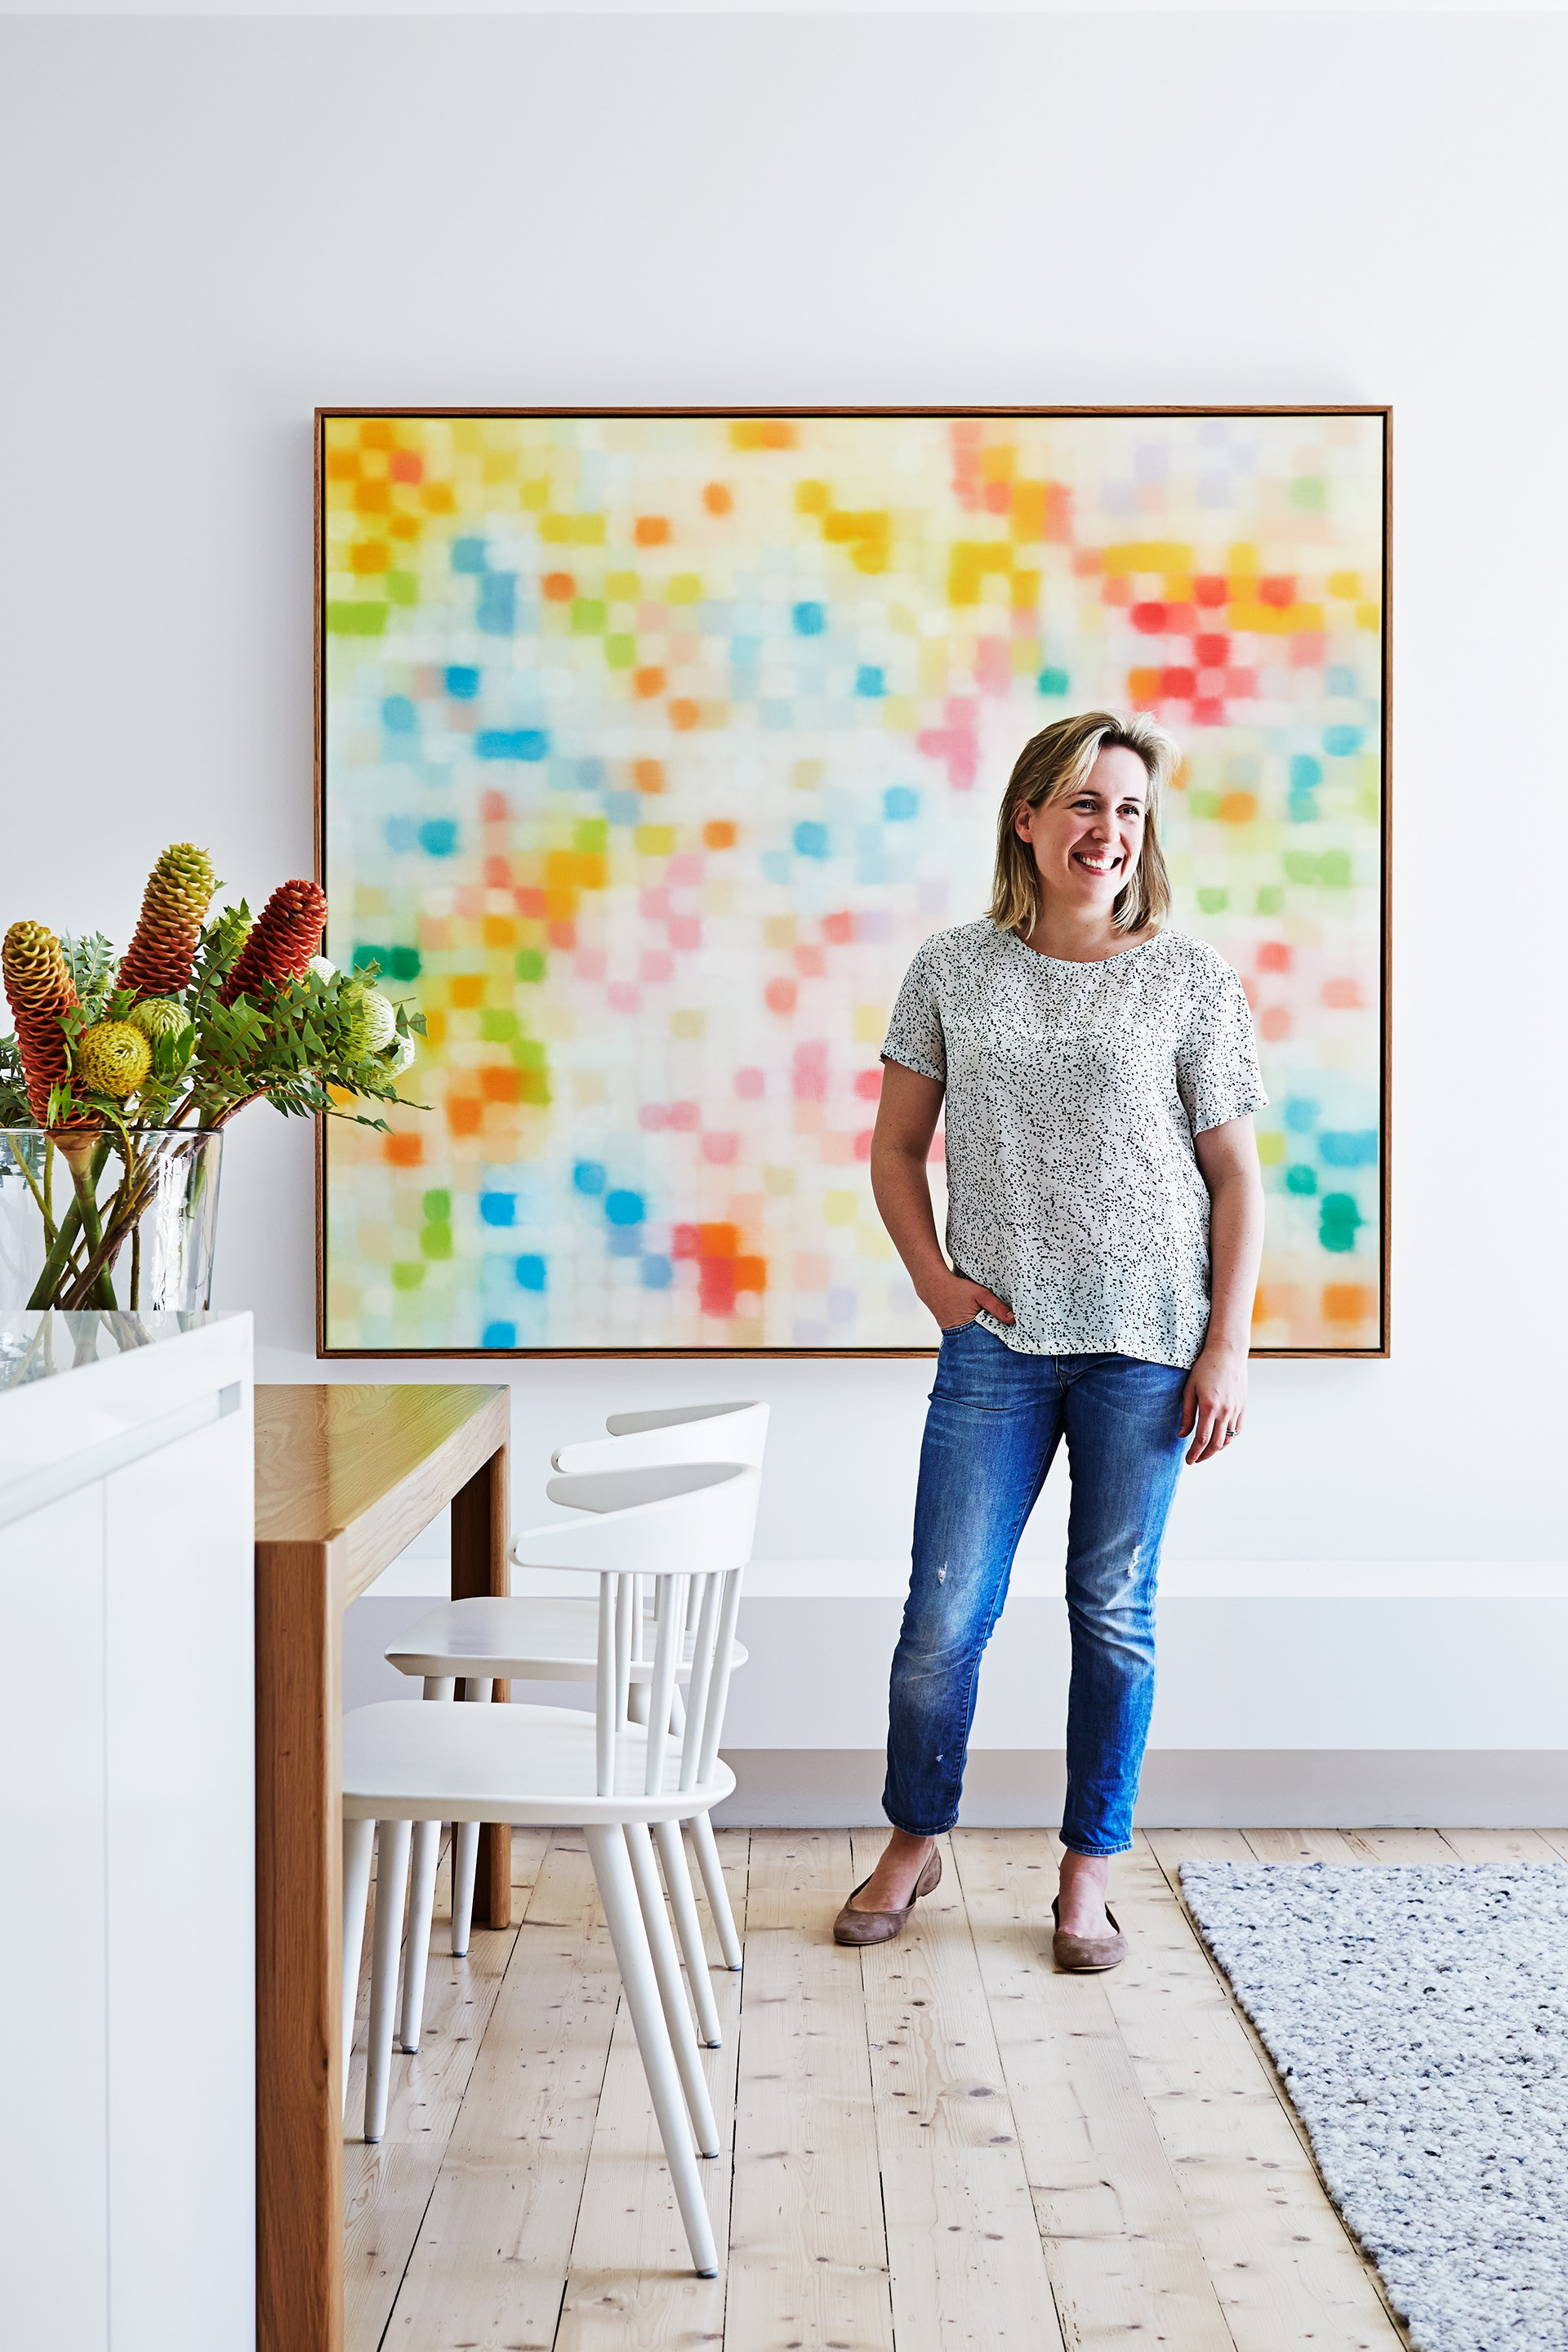 """""""We love where we live,"""" says owner Penny Cohen of her home's Melbourne inner location. """"There are great parks and restaurants while still being close to the city and my work."""" The artwork is by Matthew Johnson.   For similar **flooring**, try Pine in Brushed White Oil, (2.48m x 18cm) from [Mafi](http://www.mafi.com.au/